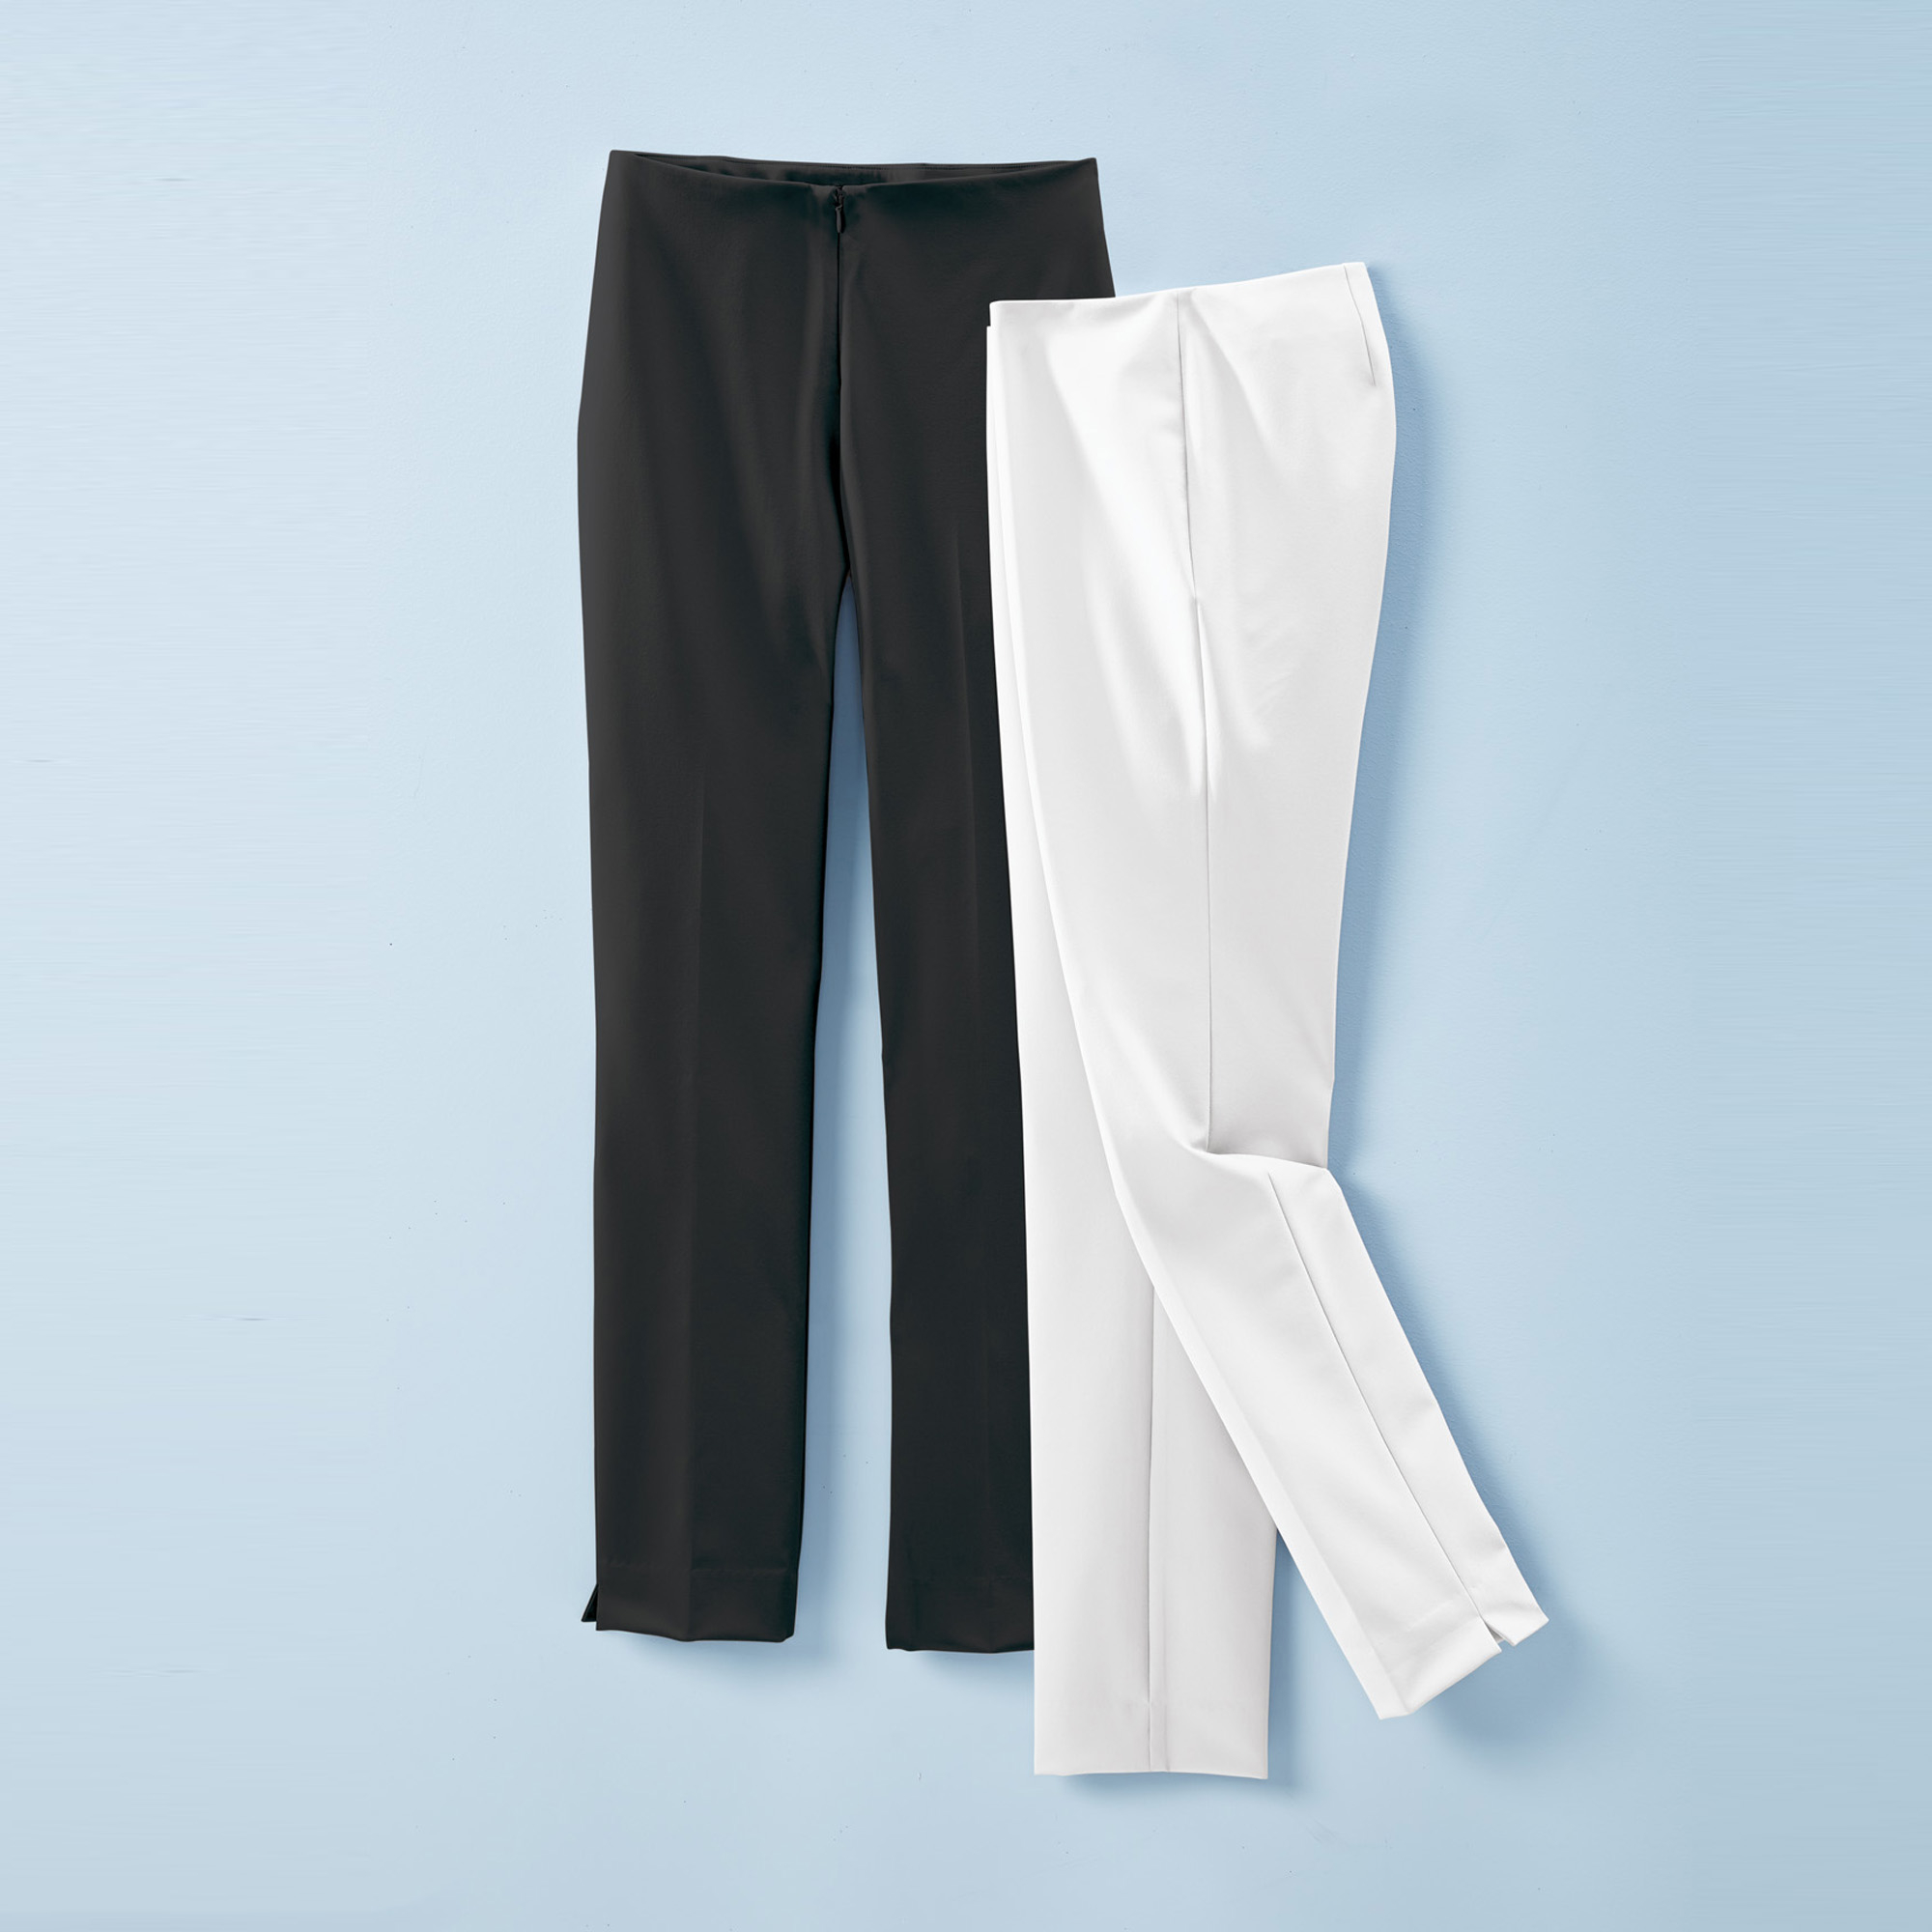 Peace Of Cloth Gramercy Jasmine Pants